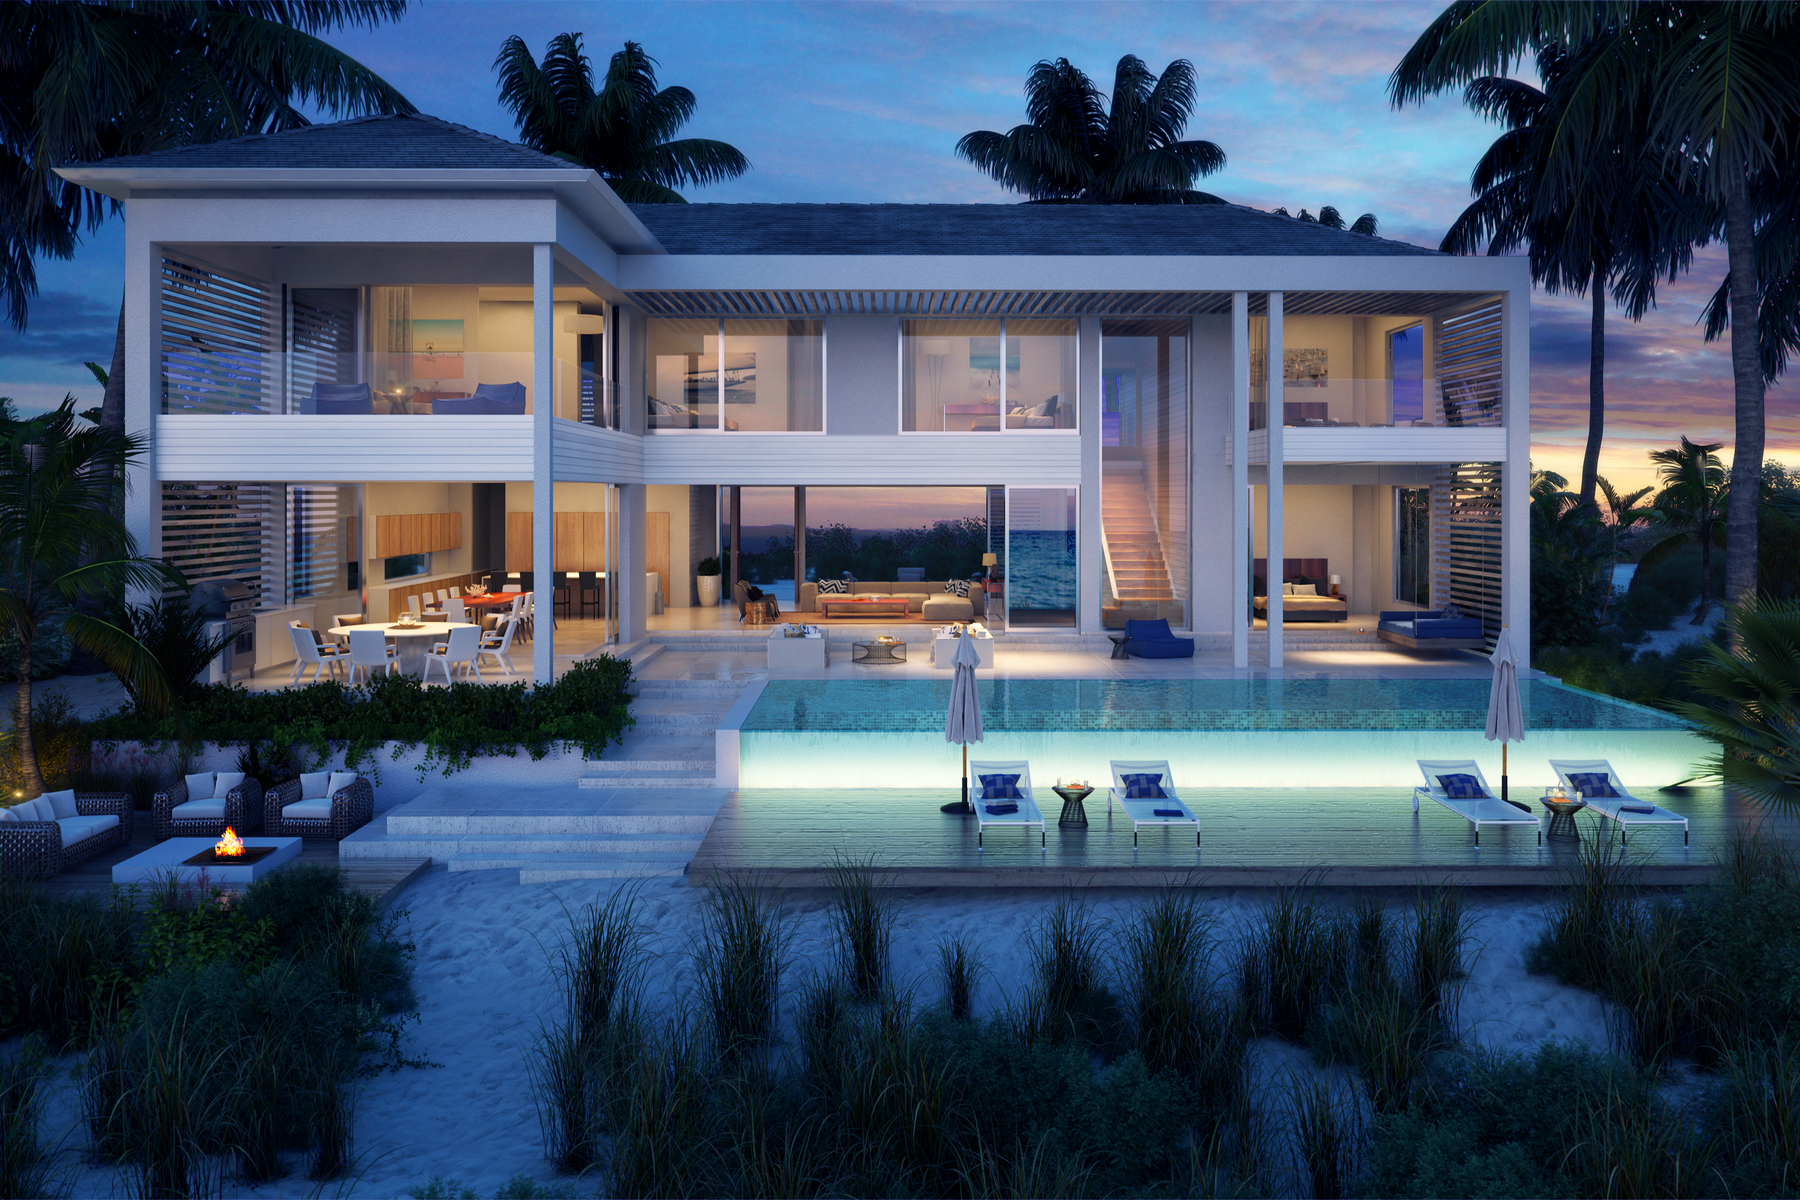 Additional photo for property listing at BEACH ENCLAVE GRACE BAY Design B Beachfront 格蕾斯湾, 普罗维登夏 TCI 特克斯和凯科斯群岛